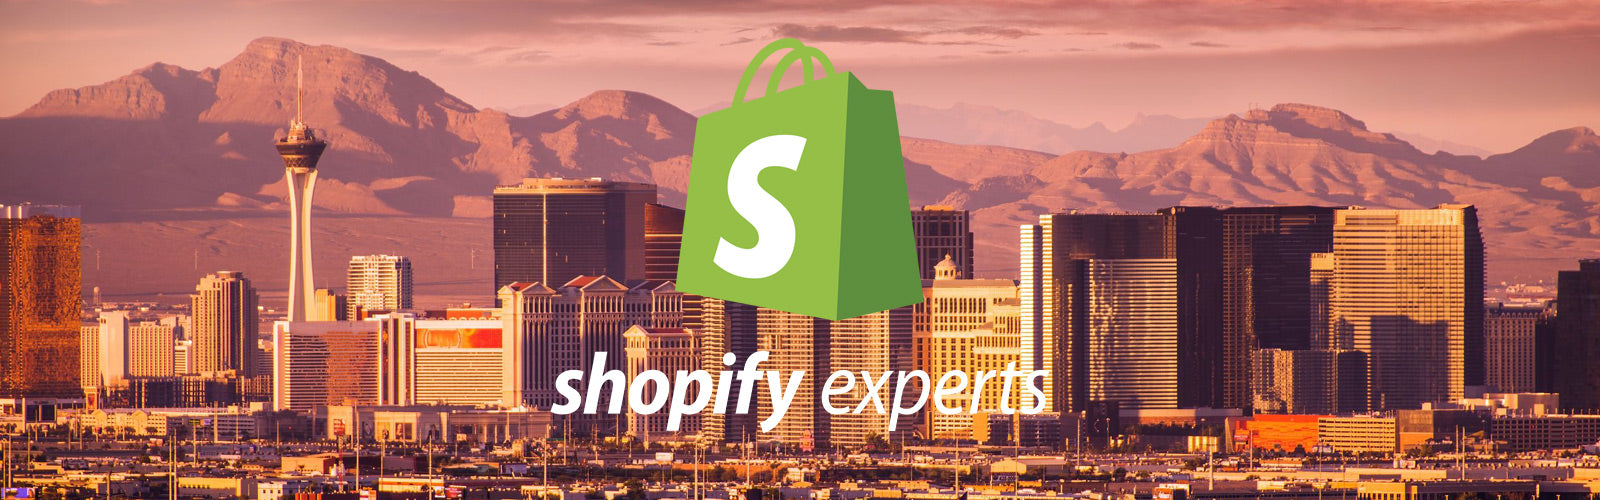 Realm - Shopify Experts Reno Nevada